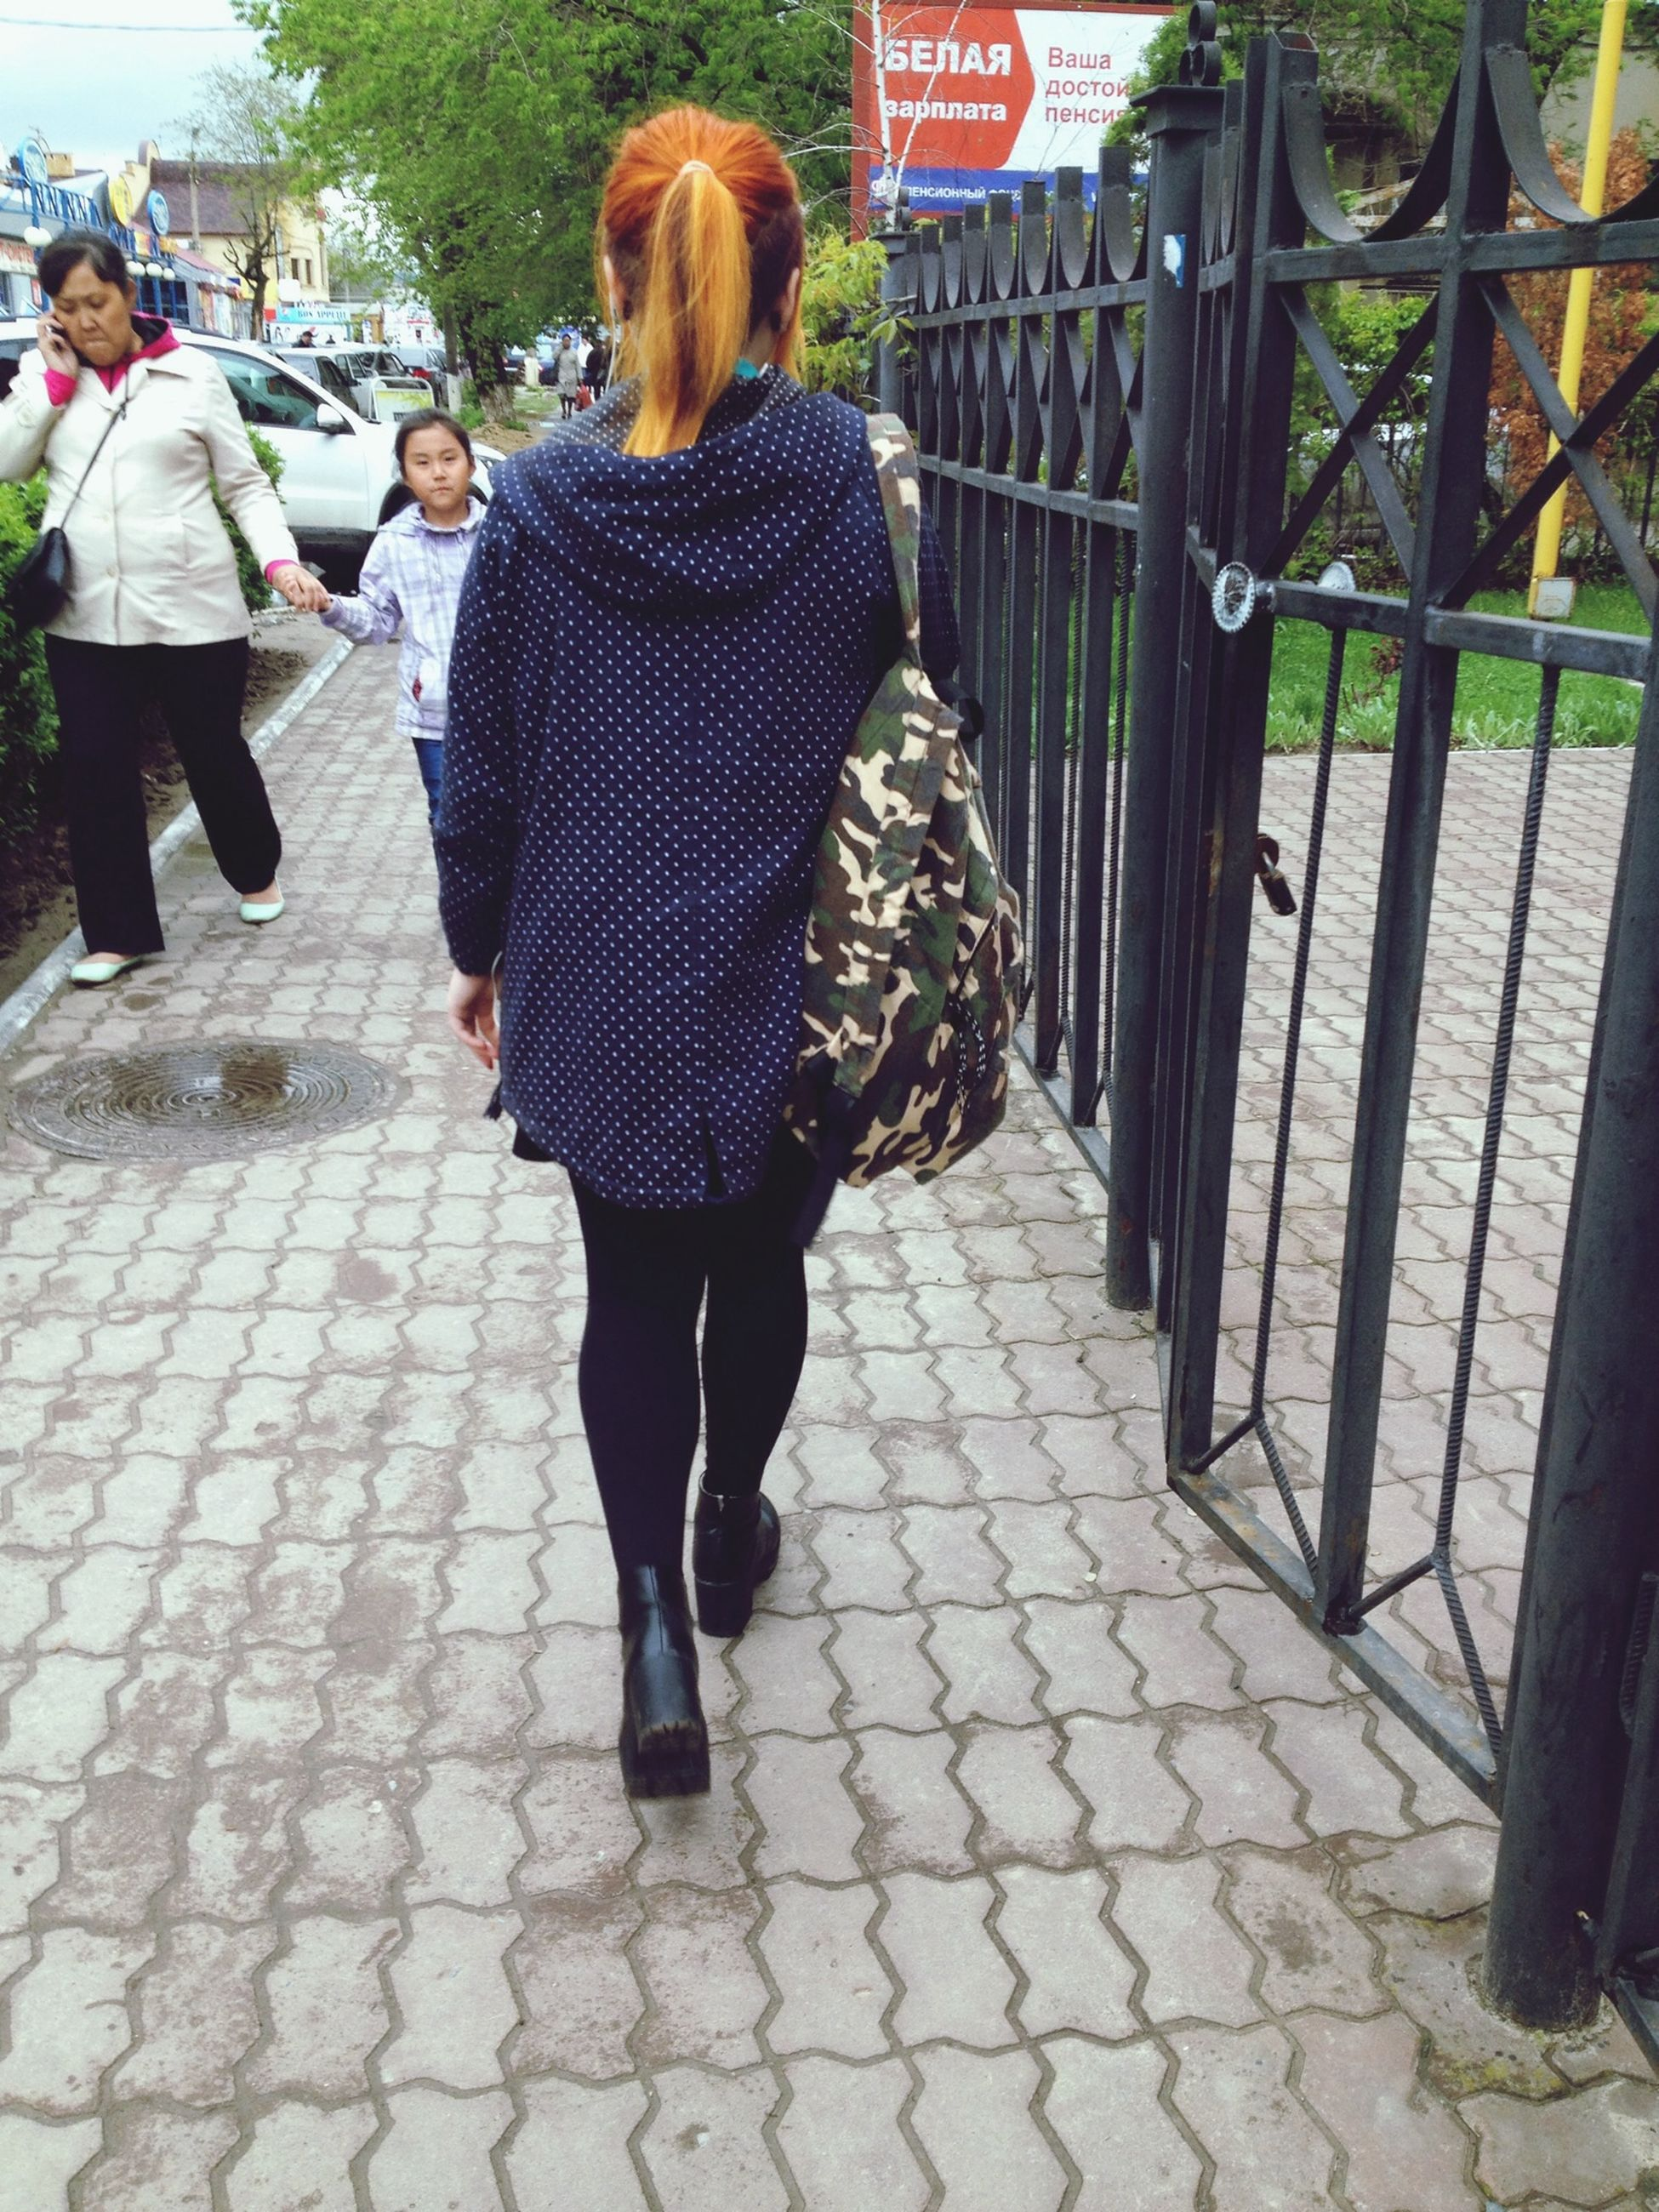 lifestyles, rear view, full length, casual clothing, walking, leisure activity, person, standing, sidewalk, footpath, men, cobblestone, street, city life, day, outdoors, sunlight, incidental people